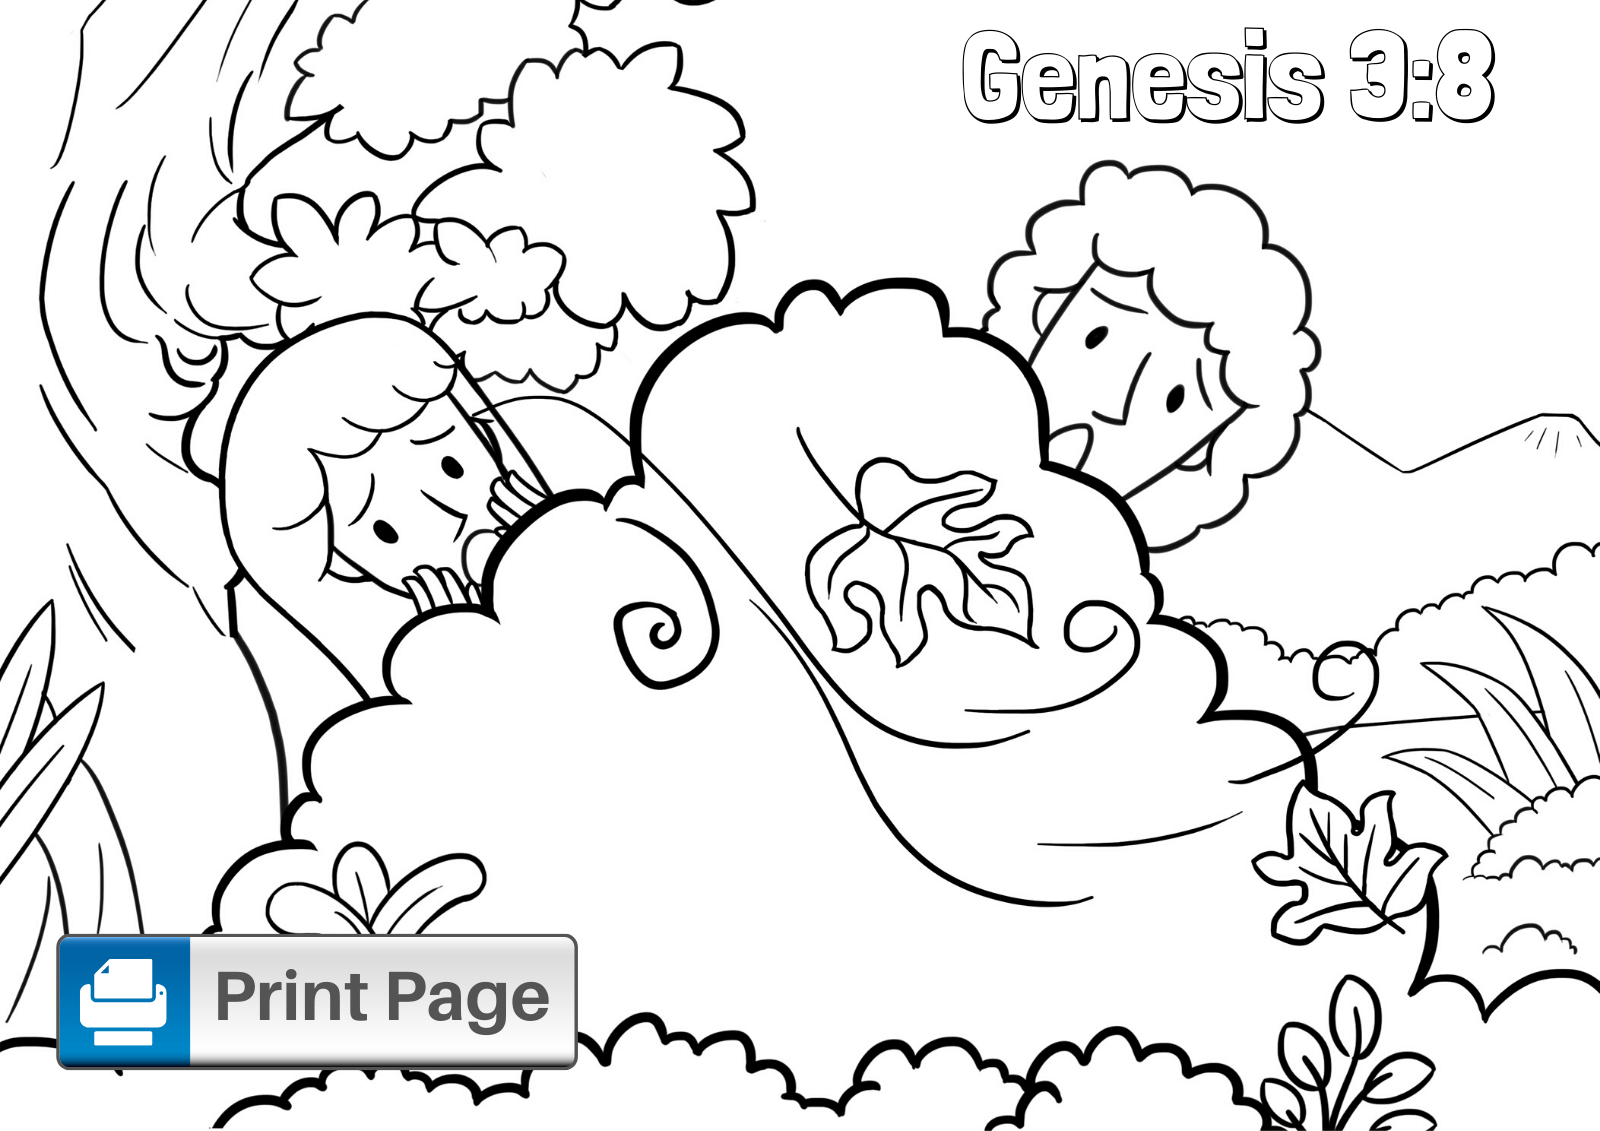 coloring adam and eve story for kids free printable adam and eve coloring pages for kids kids for coloring adam and story eve